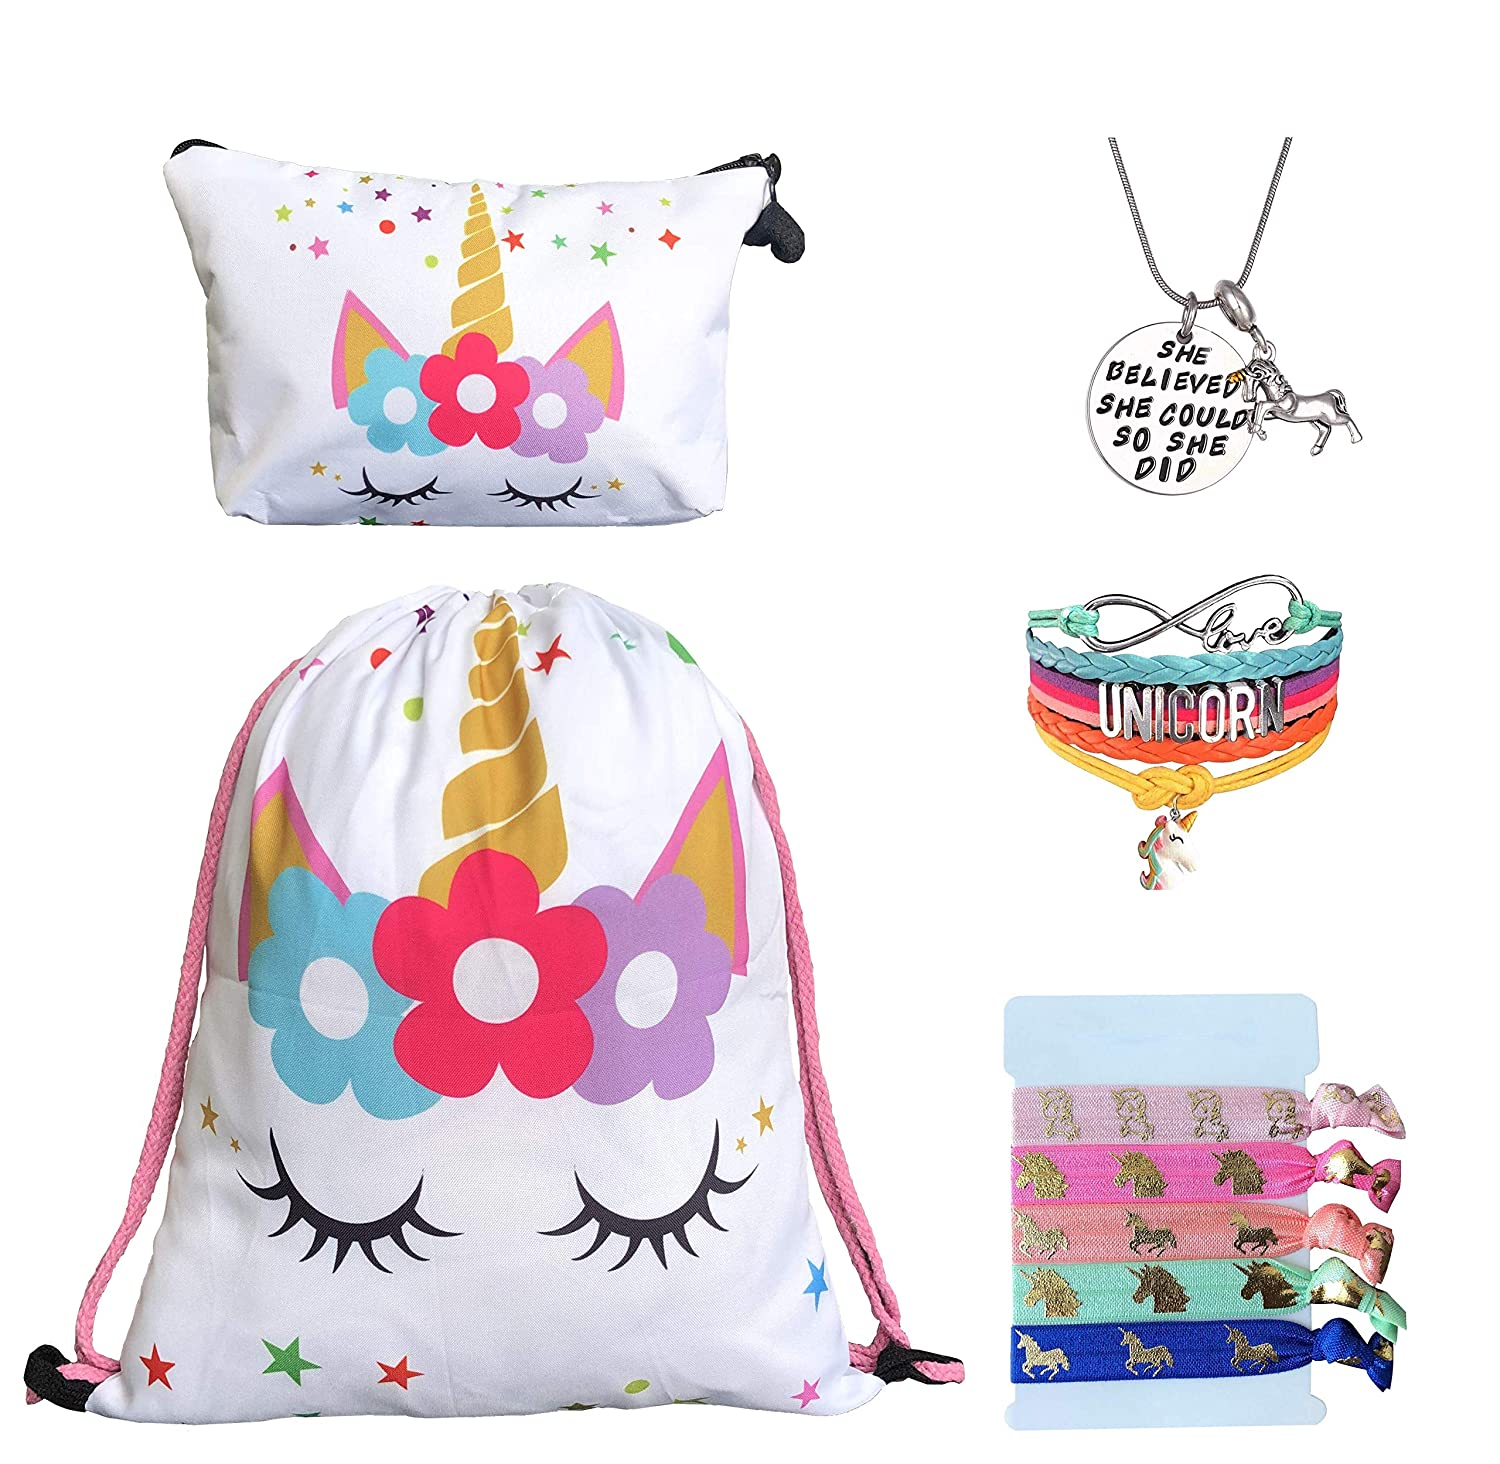 Unicorn Gifts for Girls - Unicorn Drawstring Backpack/Makeup Bag/Bracelet/Inspirational Necklace/Hair Ties (White Star Unicorn)